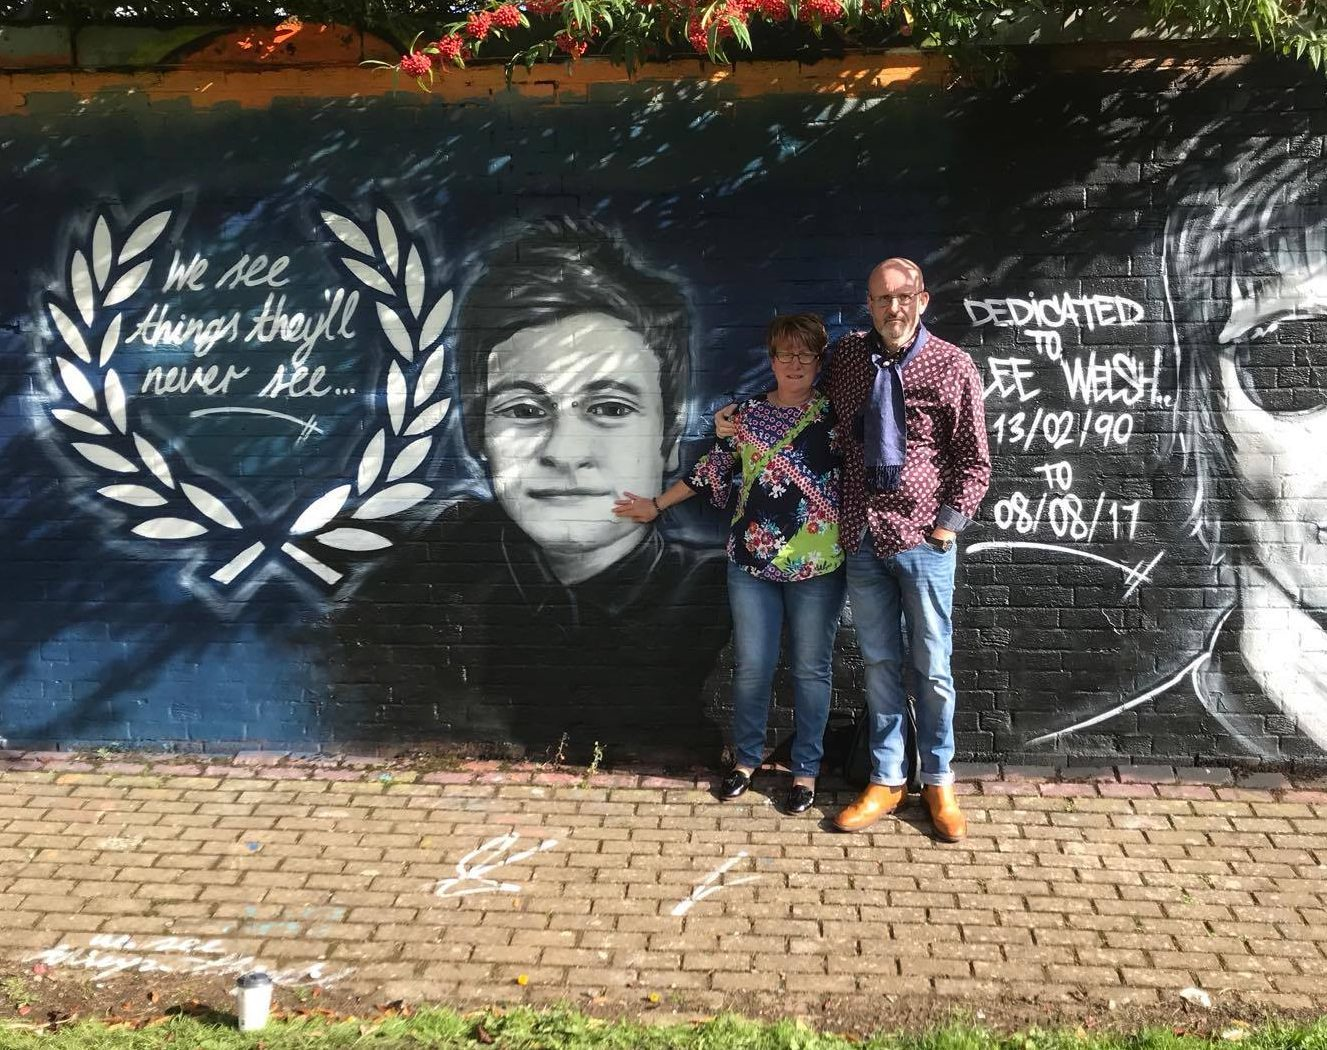 Lee's parents Phil and Lesley with a mural dedicated to their son.